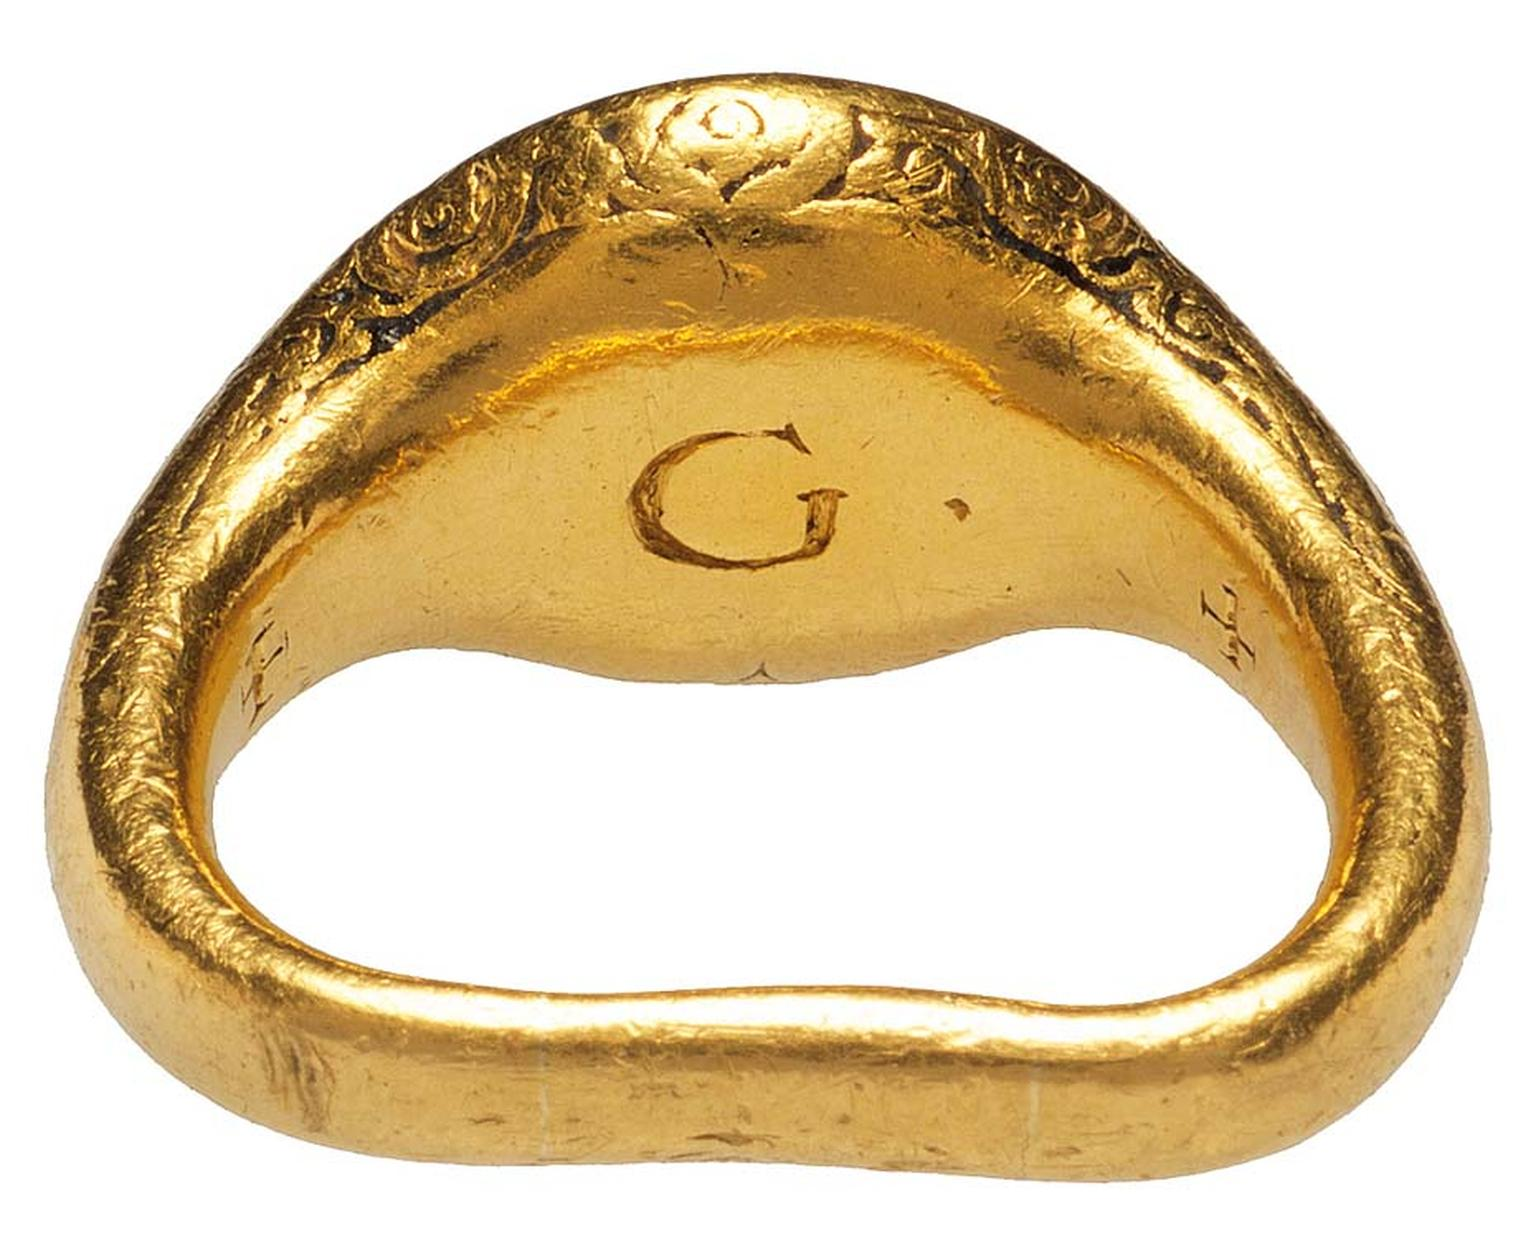 Treasures and Talismans Exhibition_Intaglio Signet Ring back.jpg